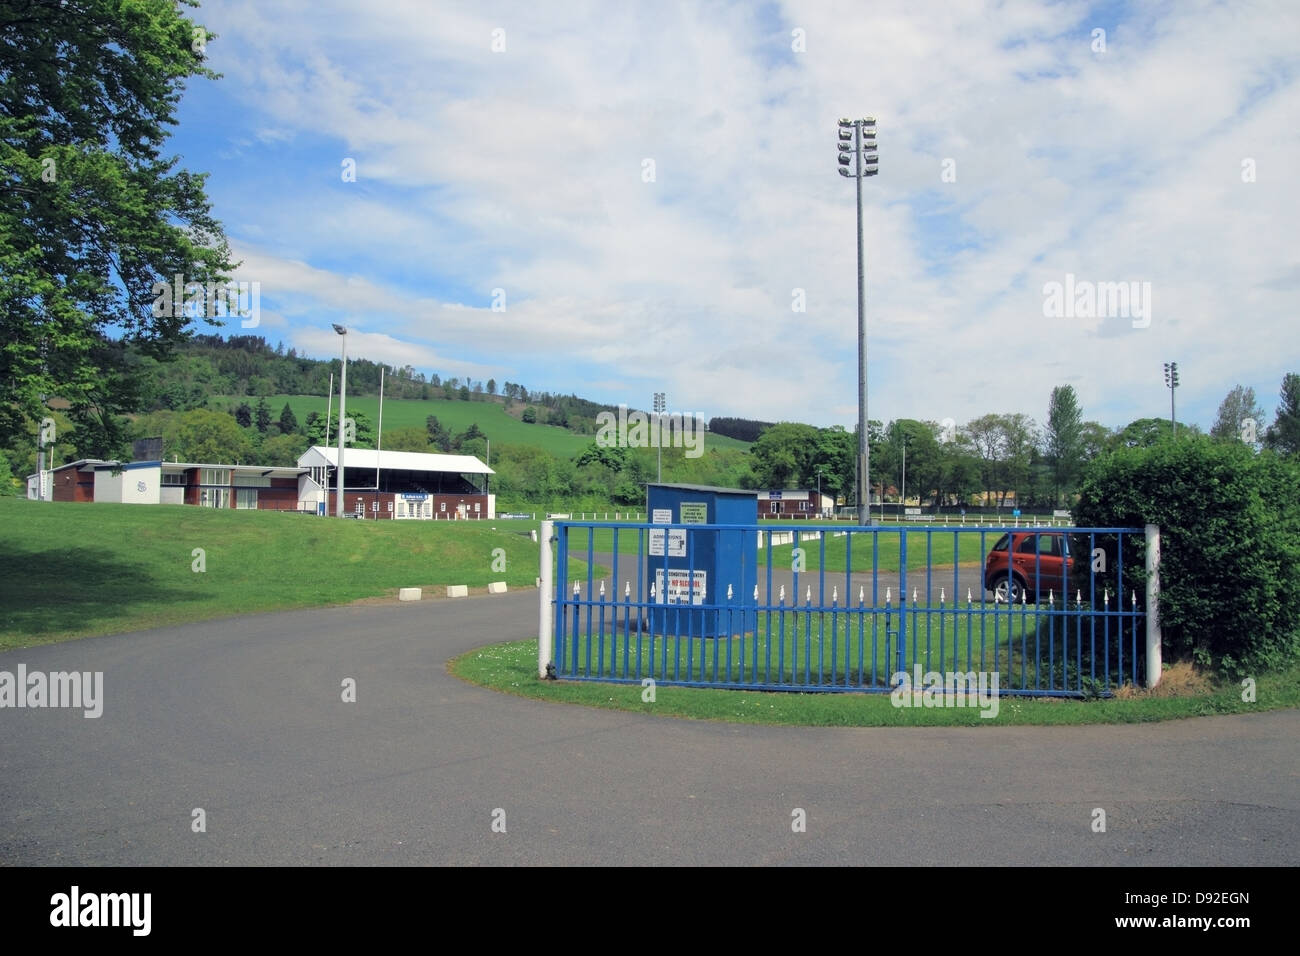 Selkirk Rugby Football Club, Borders, Scotland, UK - Stock Image